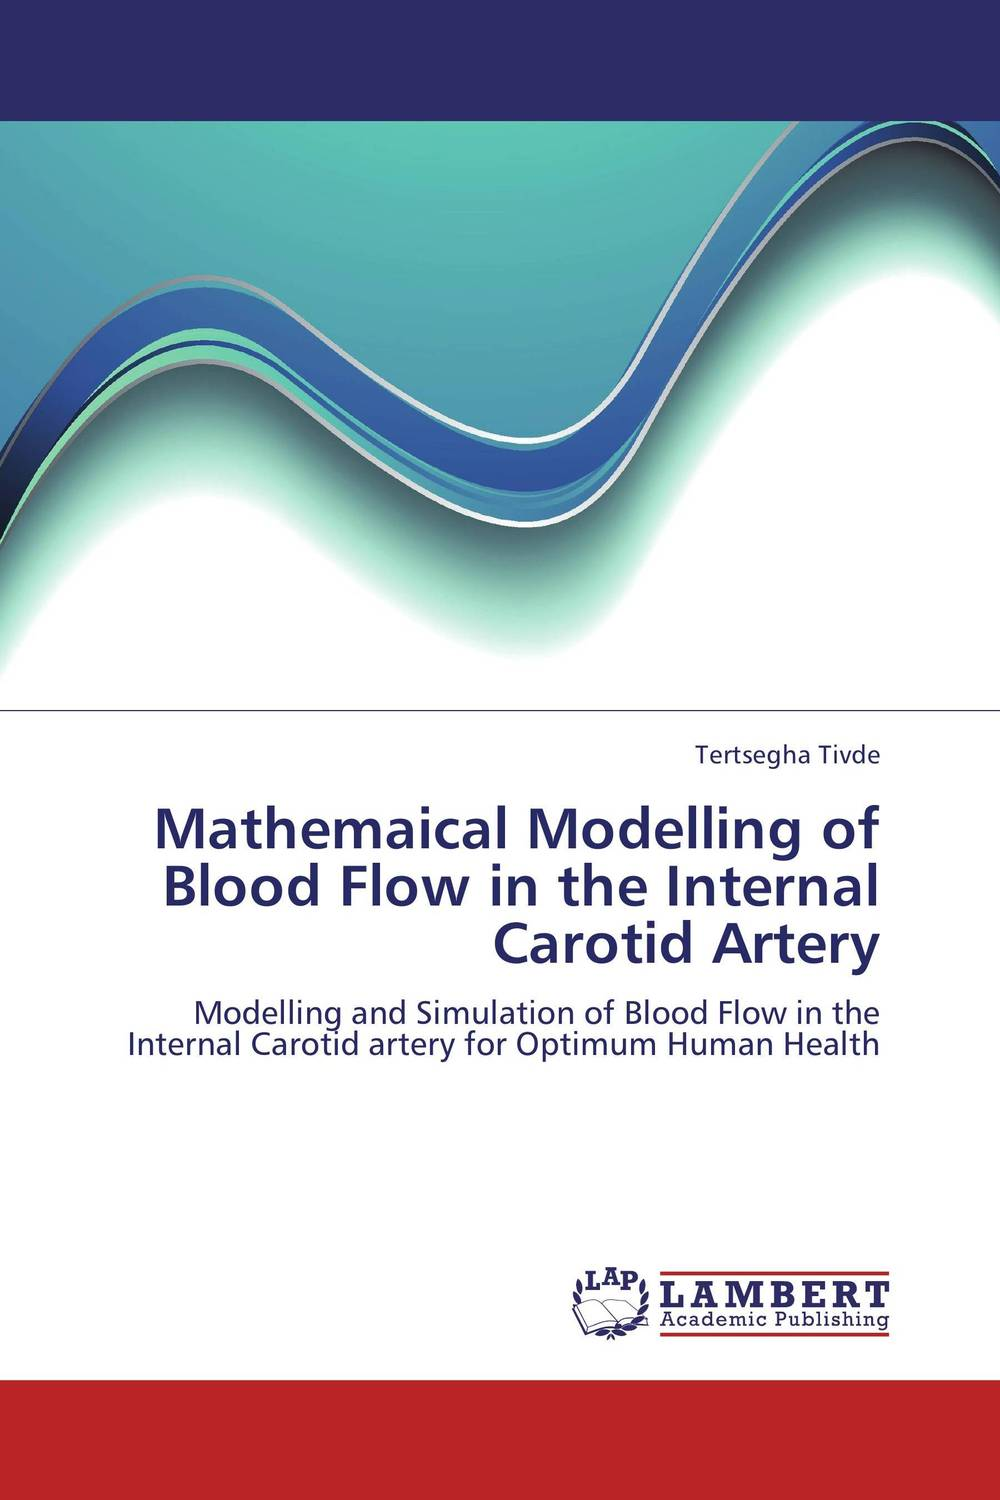 Mathemaical Modelling of Blood Flow in the Internal Carotid Artery coldplay – a rush of blood to the head lp